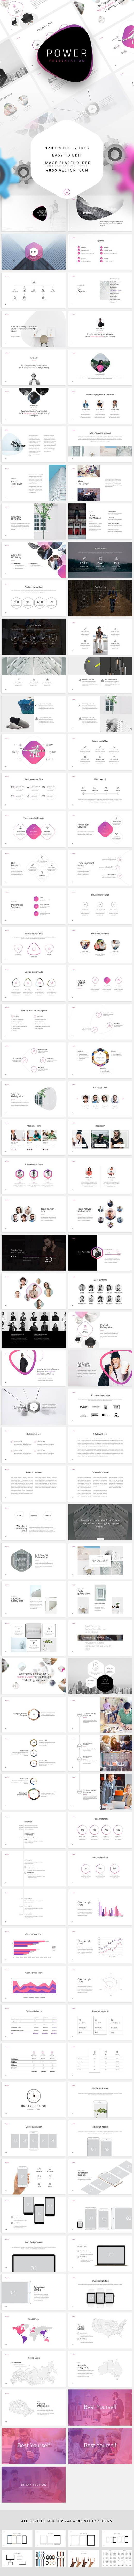 PowerPowerpoint Template #presentation #ecommerce • Download ➝ https://graphicriver.net/item/powerpowrpoint-template/18273905?ref=pxcr